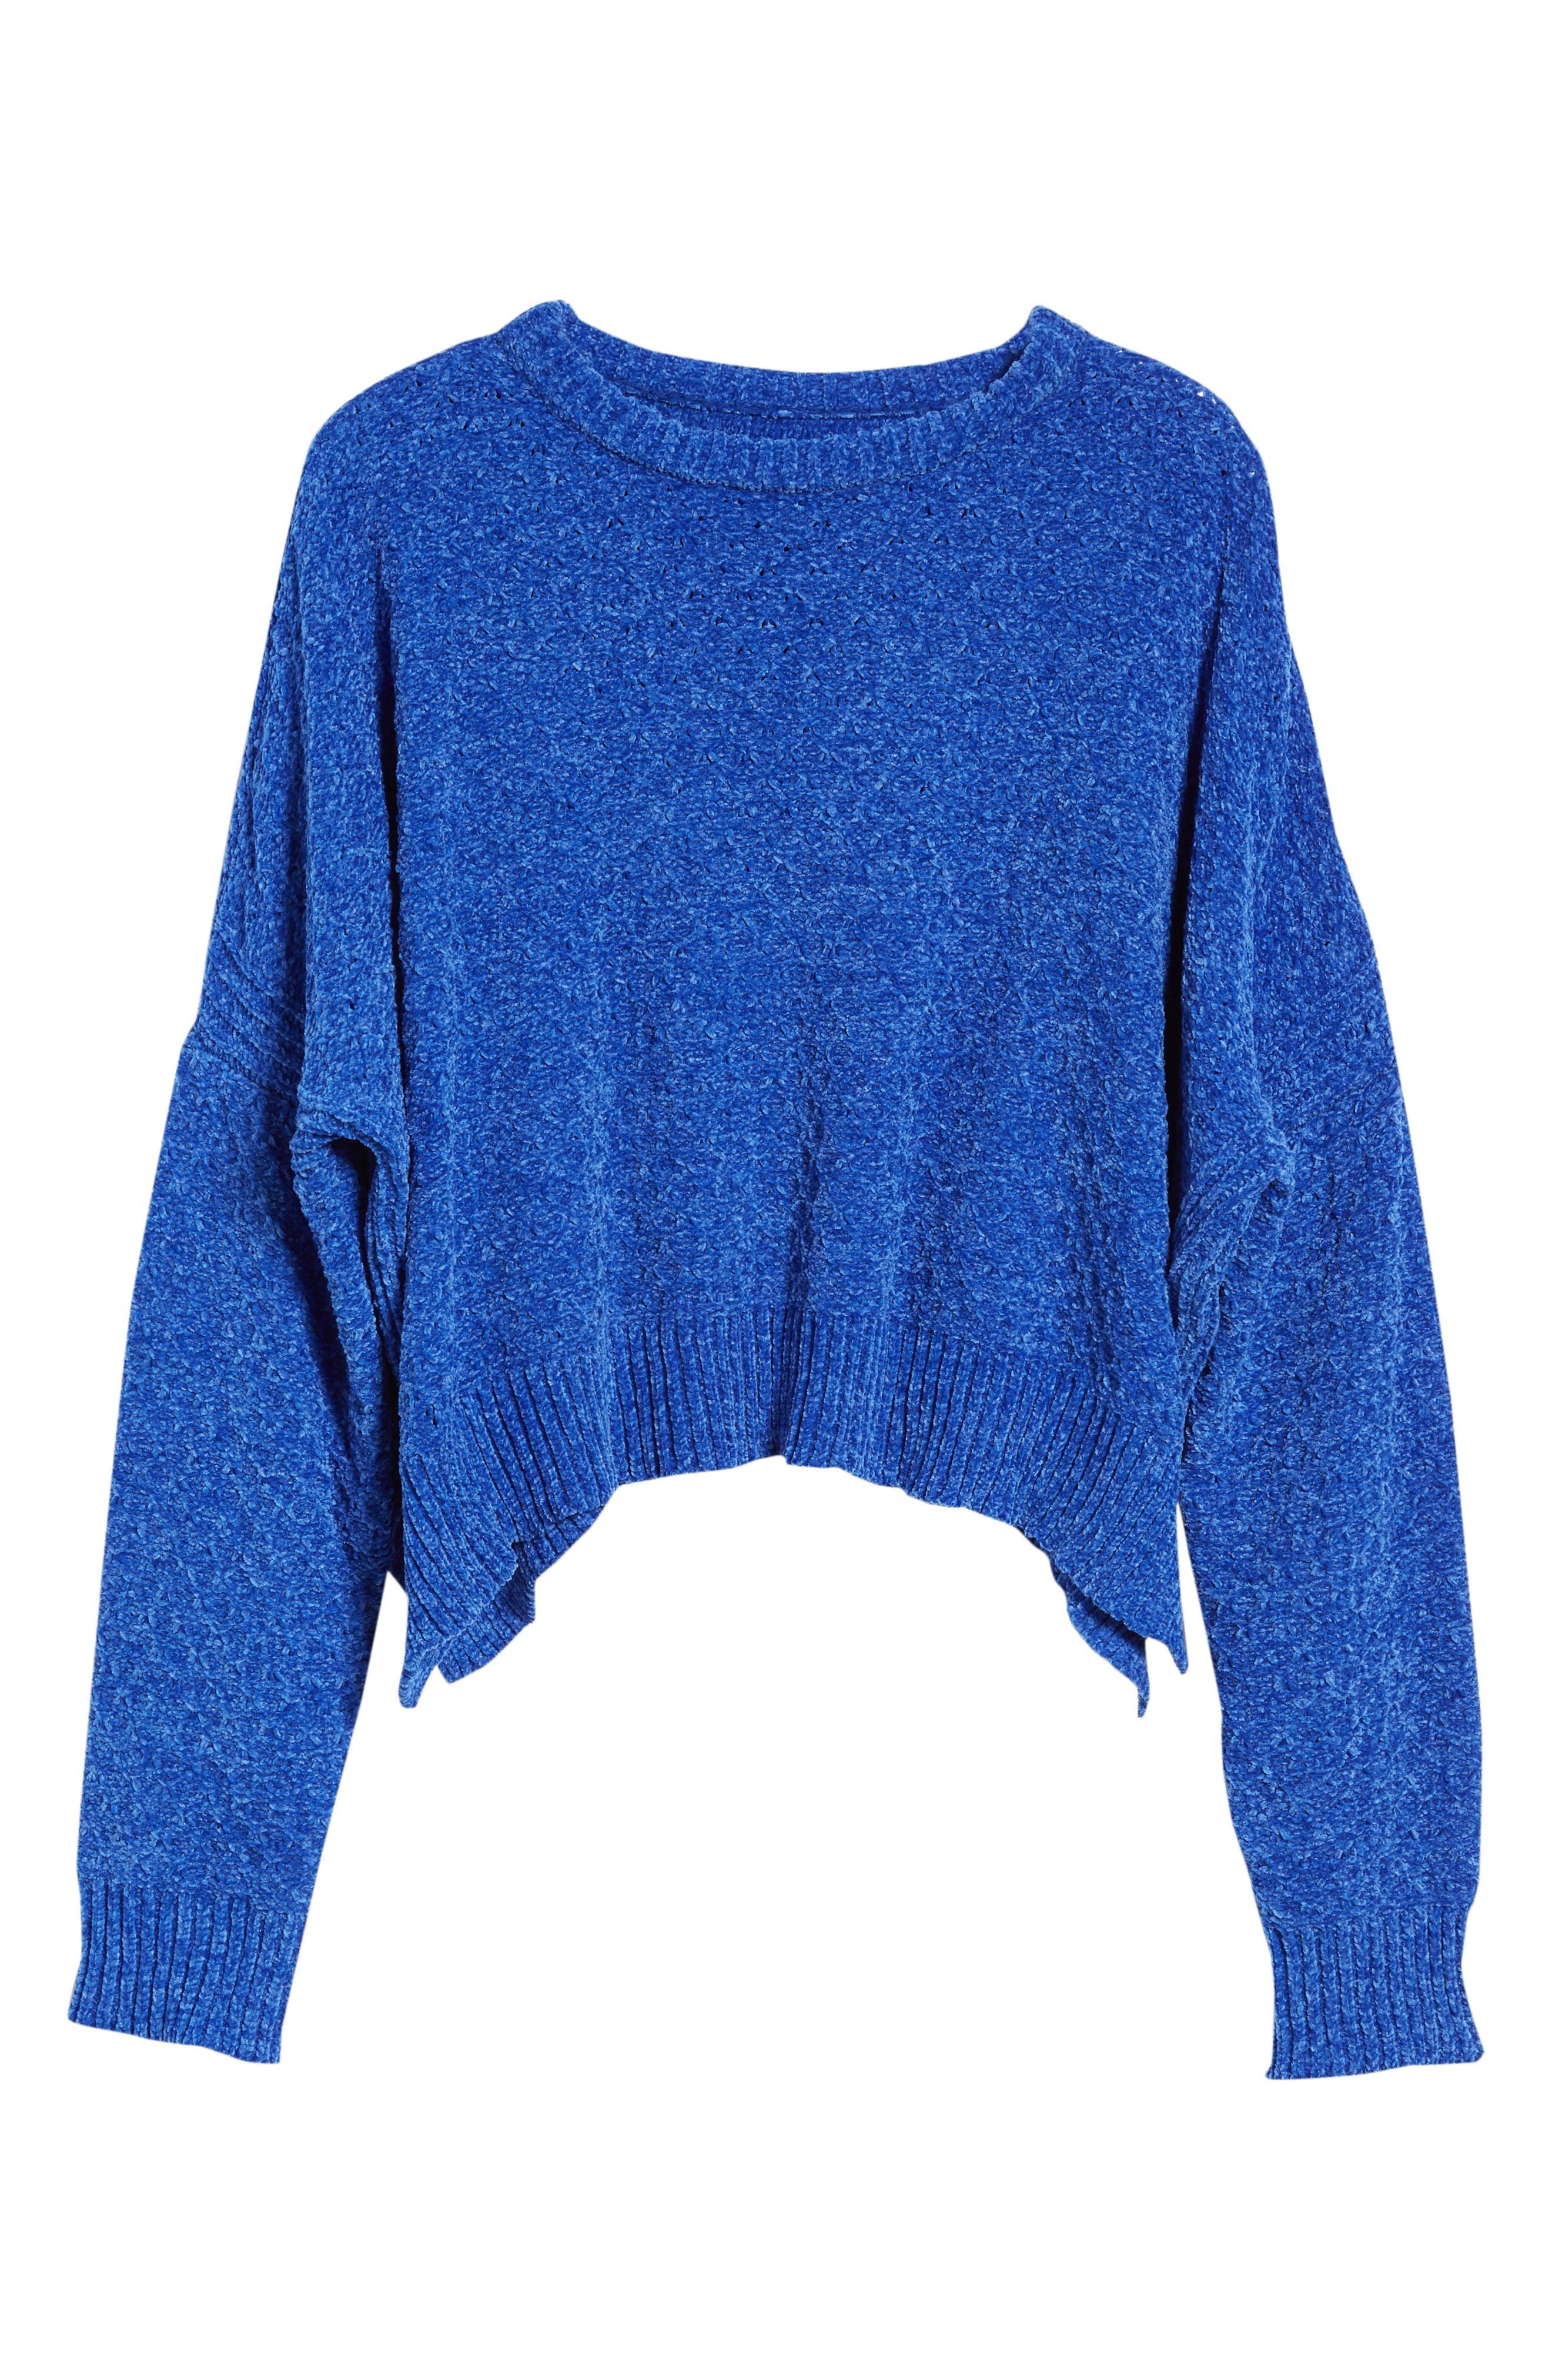 Chenille Sweater,                             Alternate thumbnail 7, color,                             Electric Blue